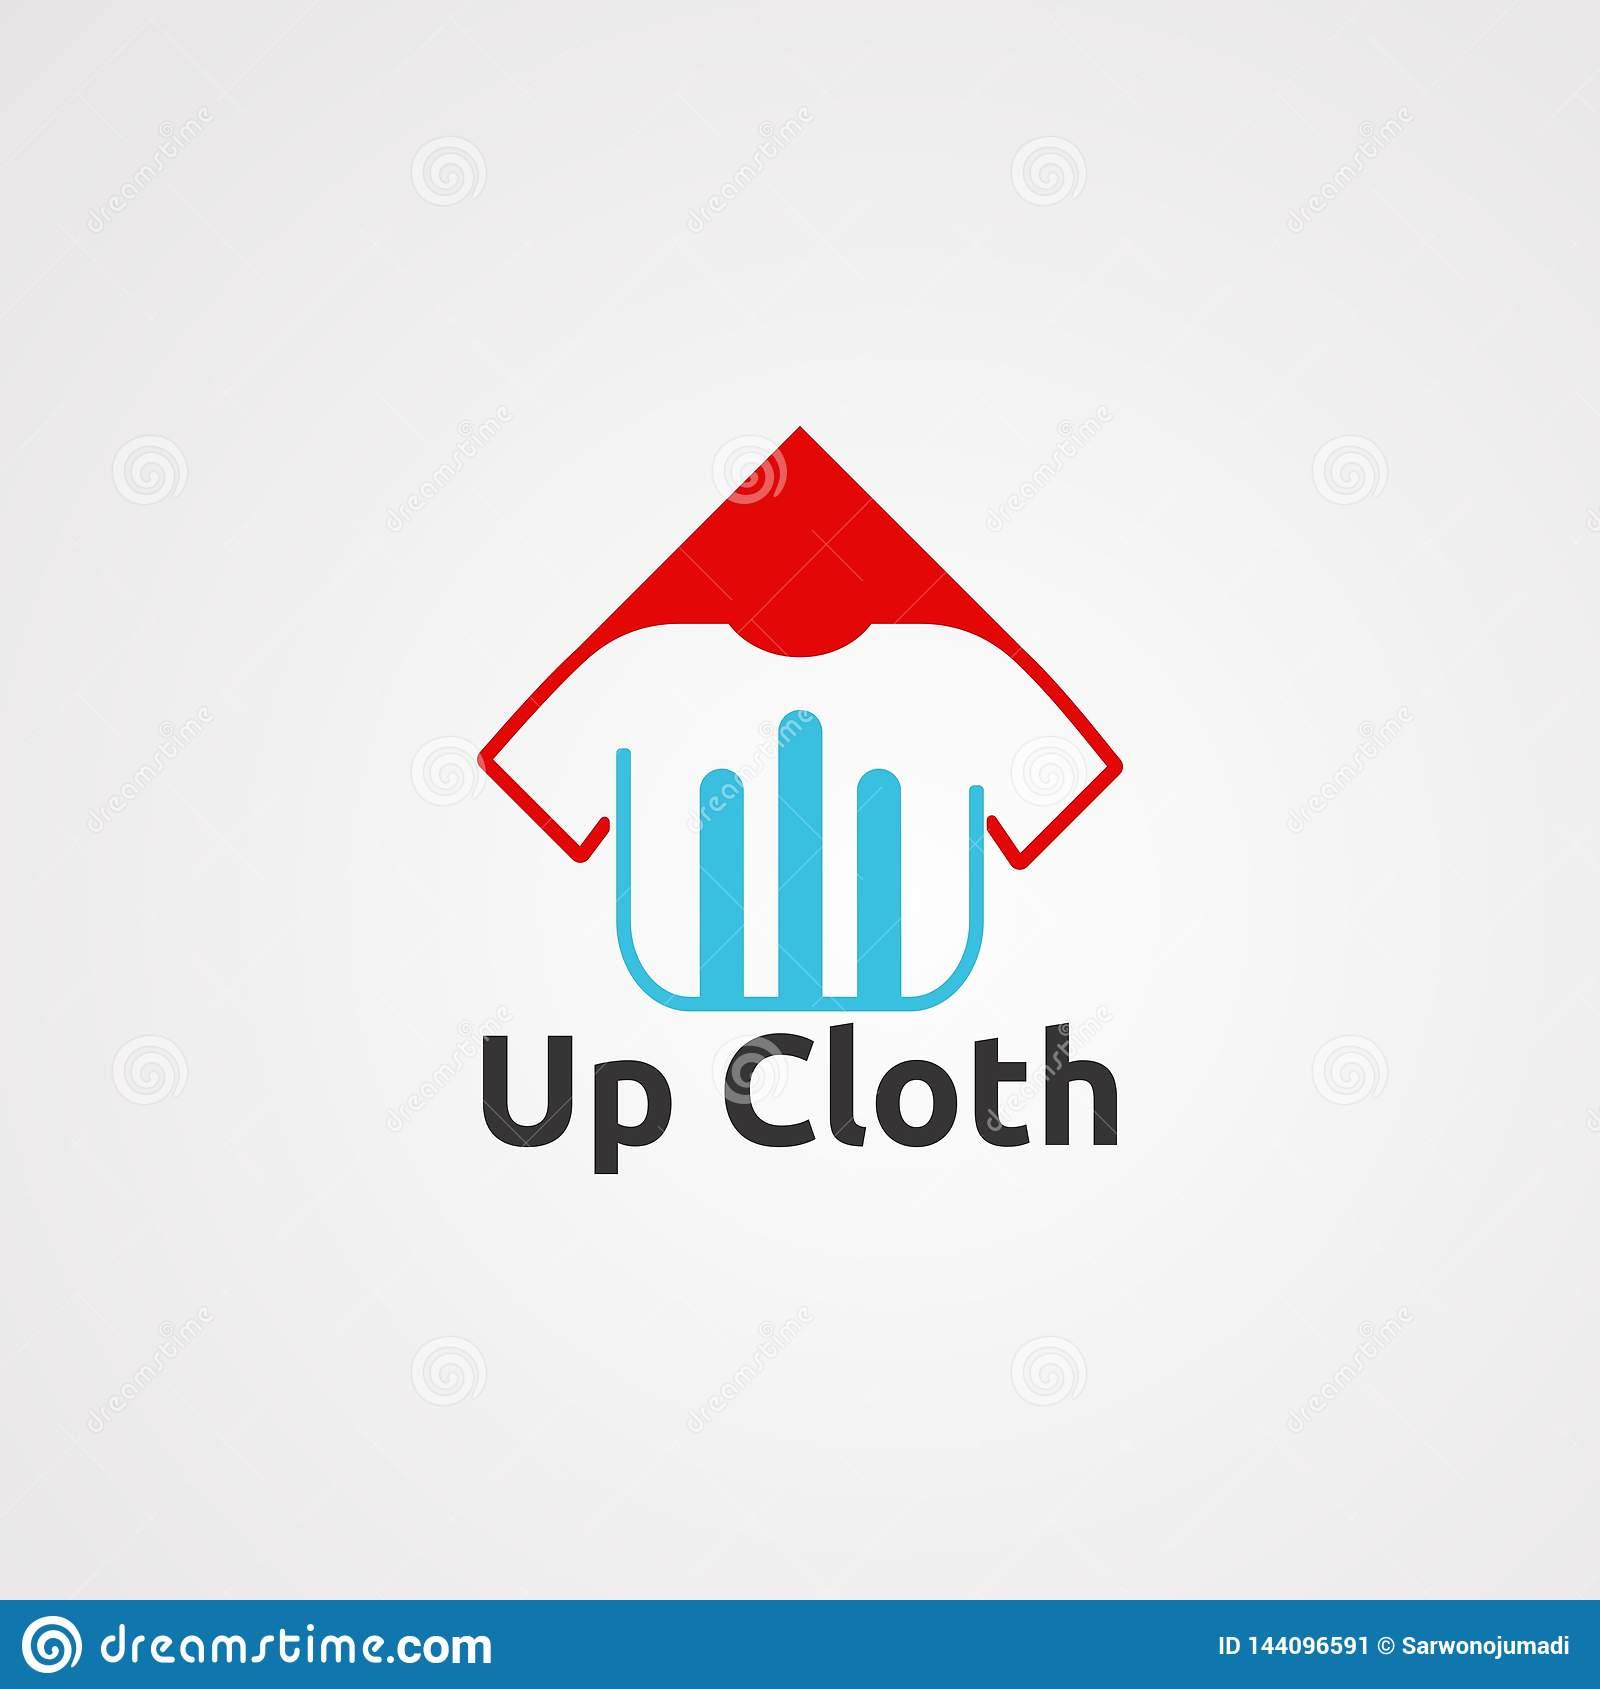 Up cloth logo vector, icon, element, and template for company